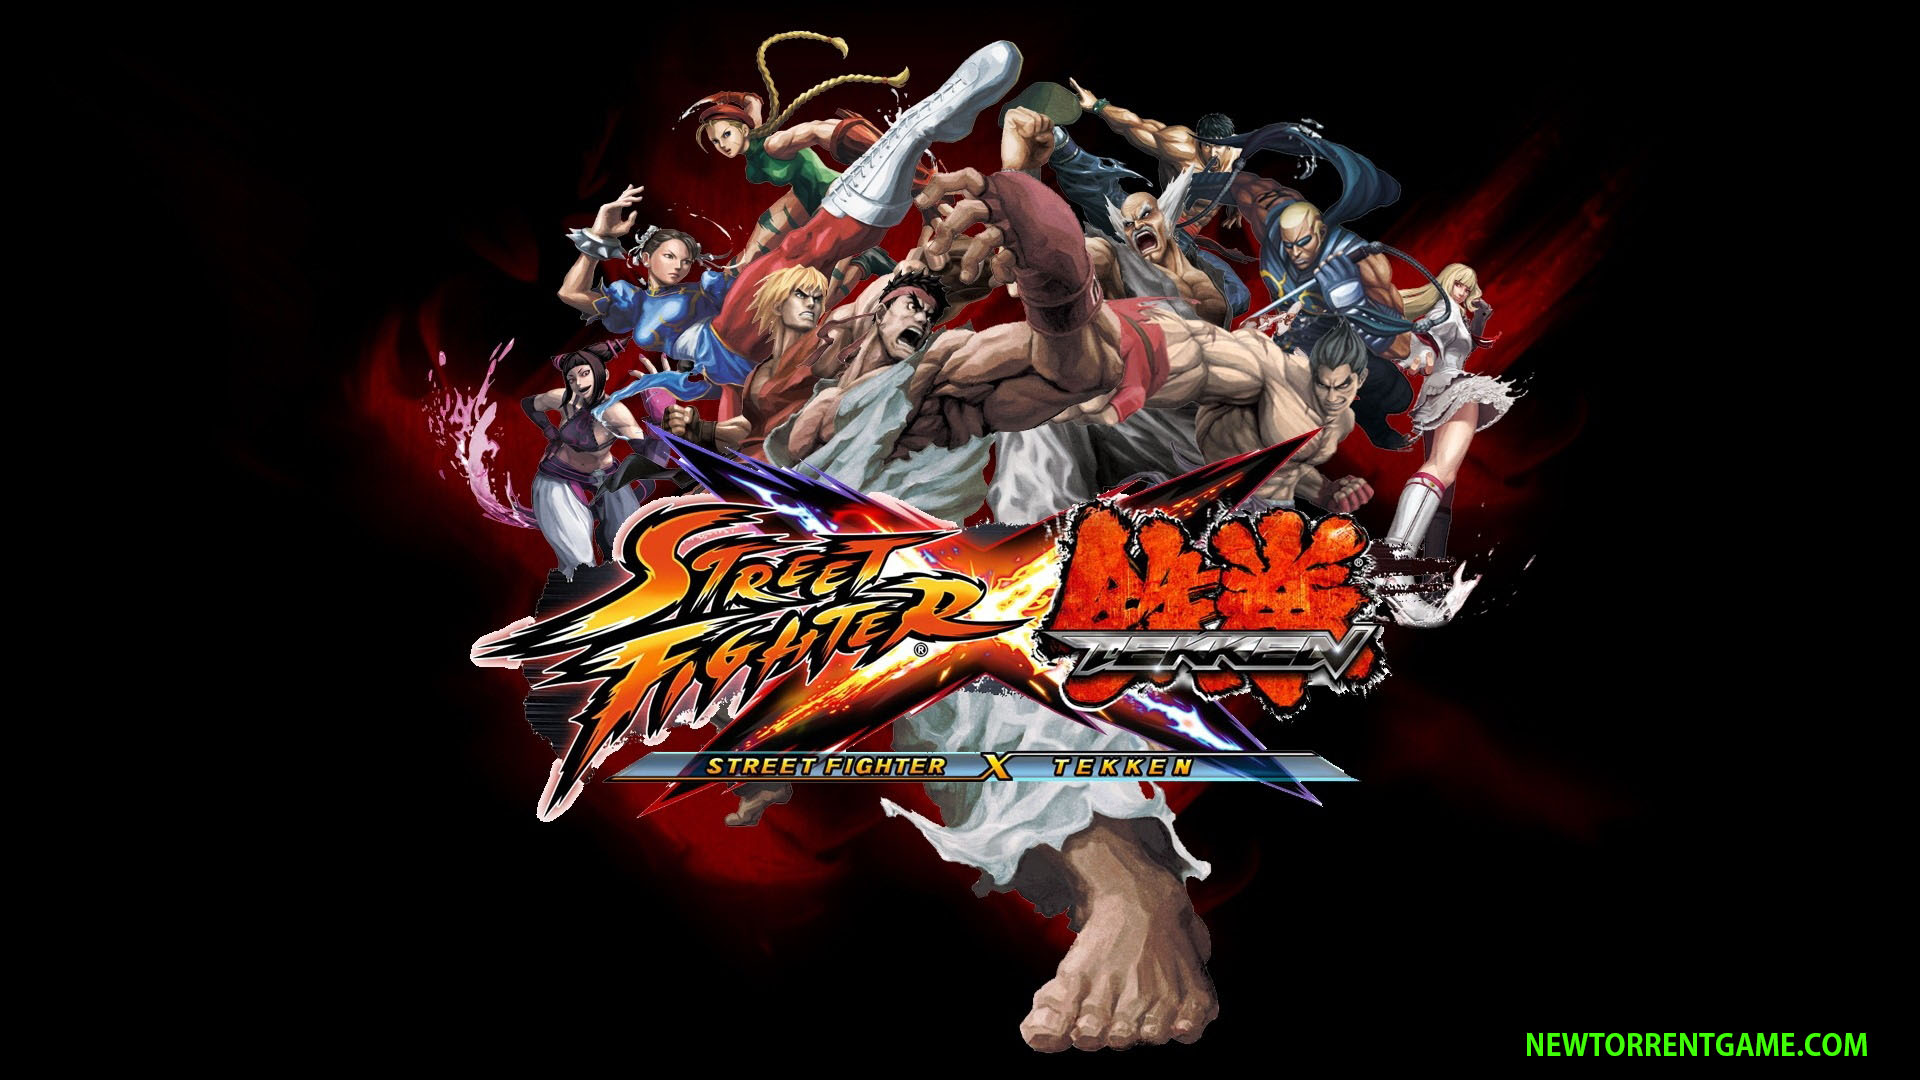 Street Fighter for Android - Free download and software ...